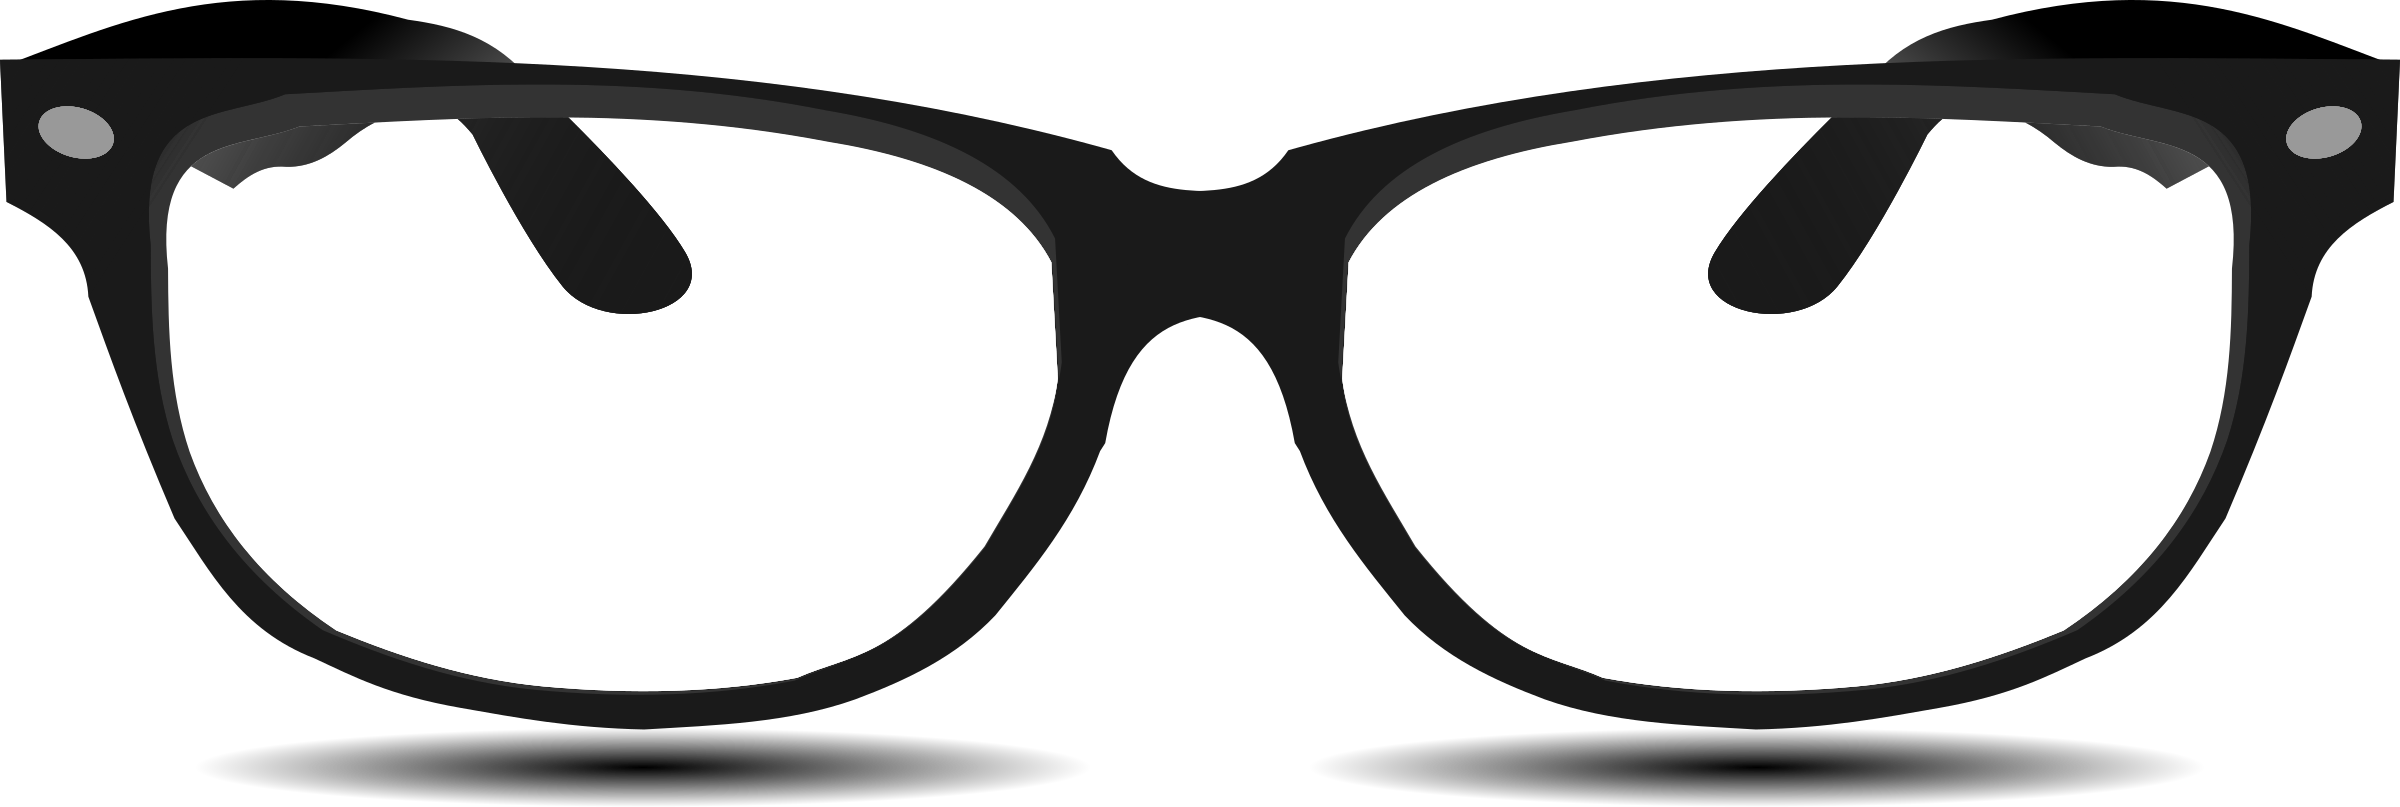 Glasses By Hatalar205 A Simple Glasses Clipart On Openclipart Glasses Clip Art Cat Eye Glass